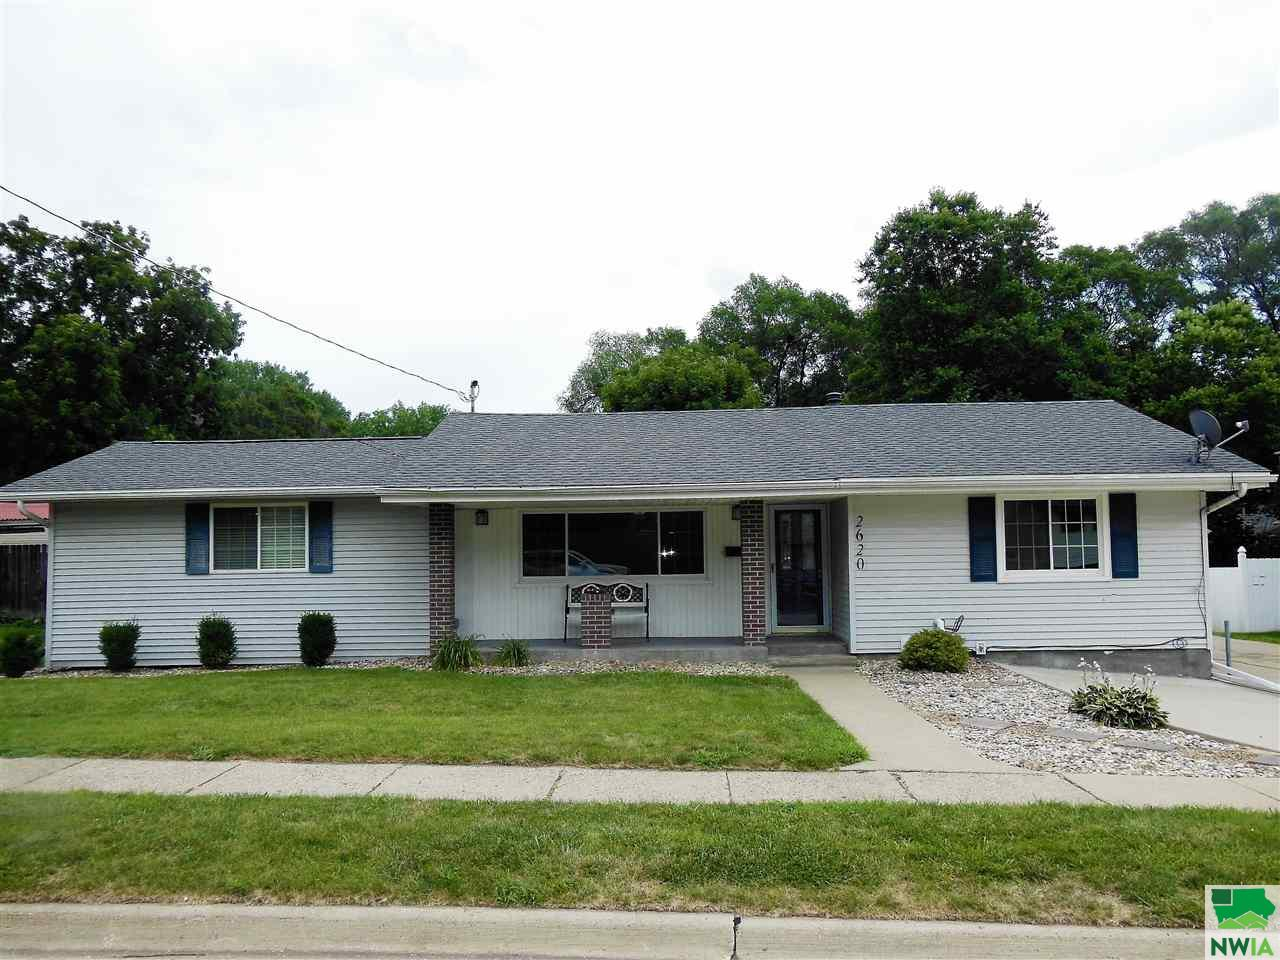 Property for sale at 2620 S. Royce St., Sioux City,  IA 51106